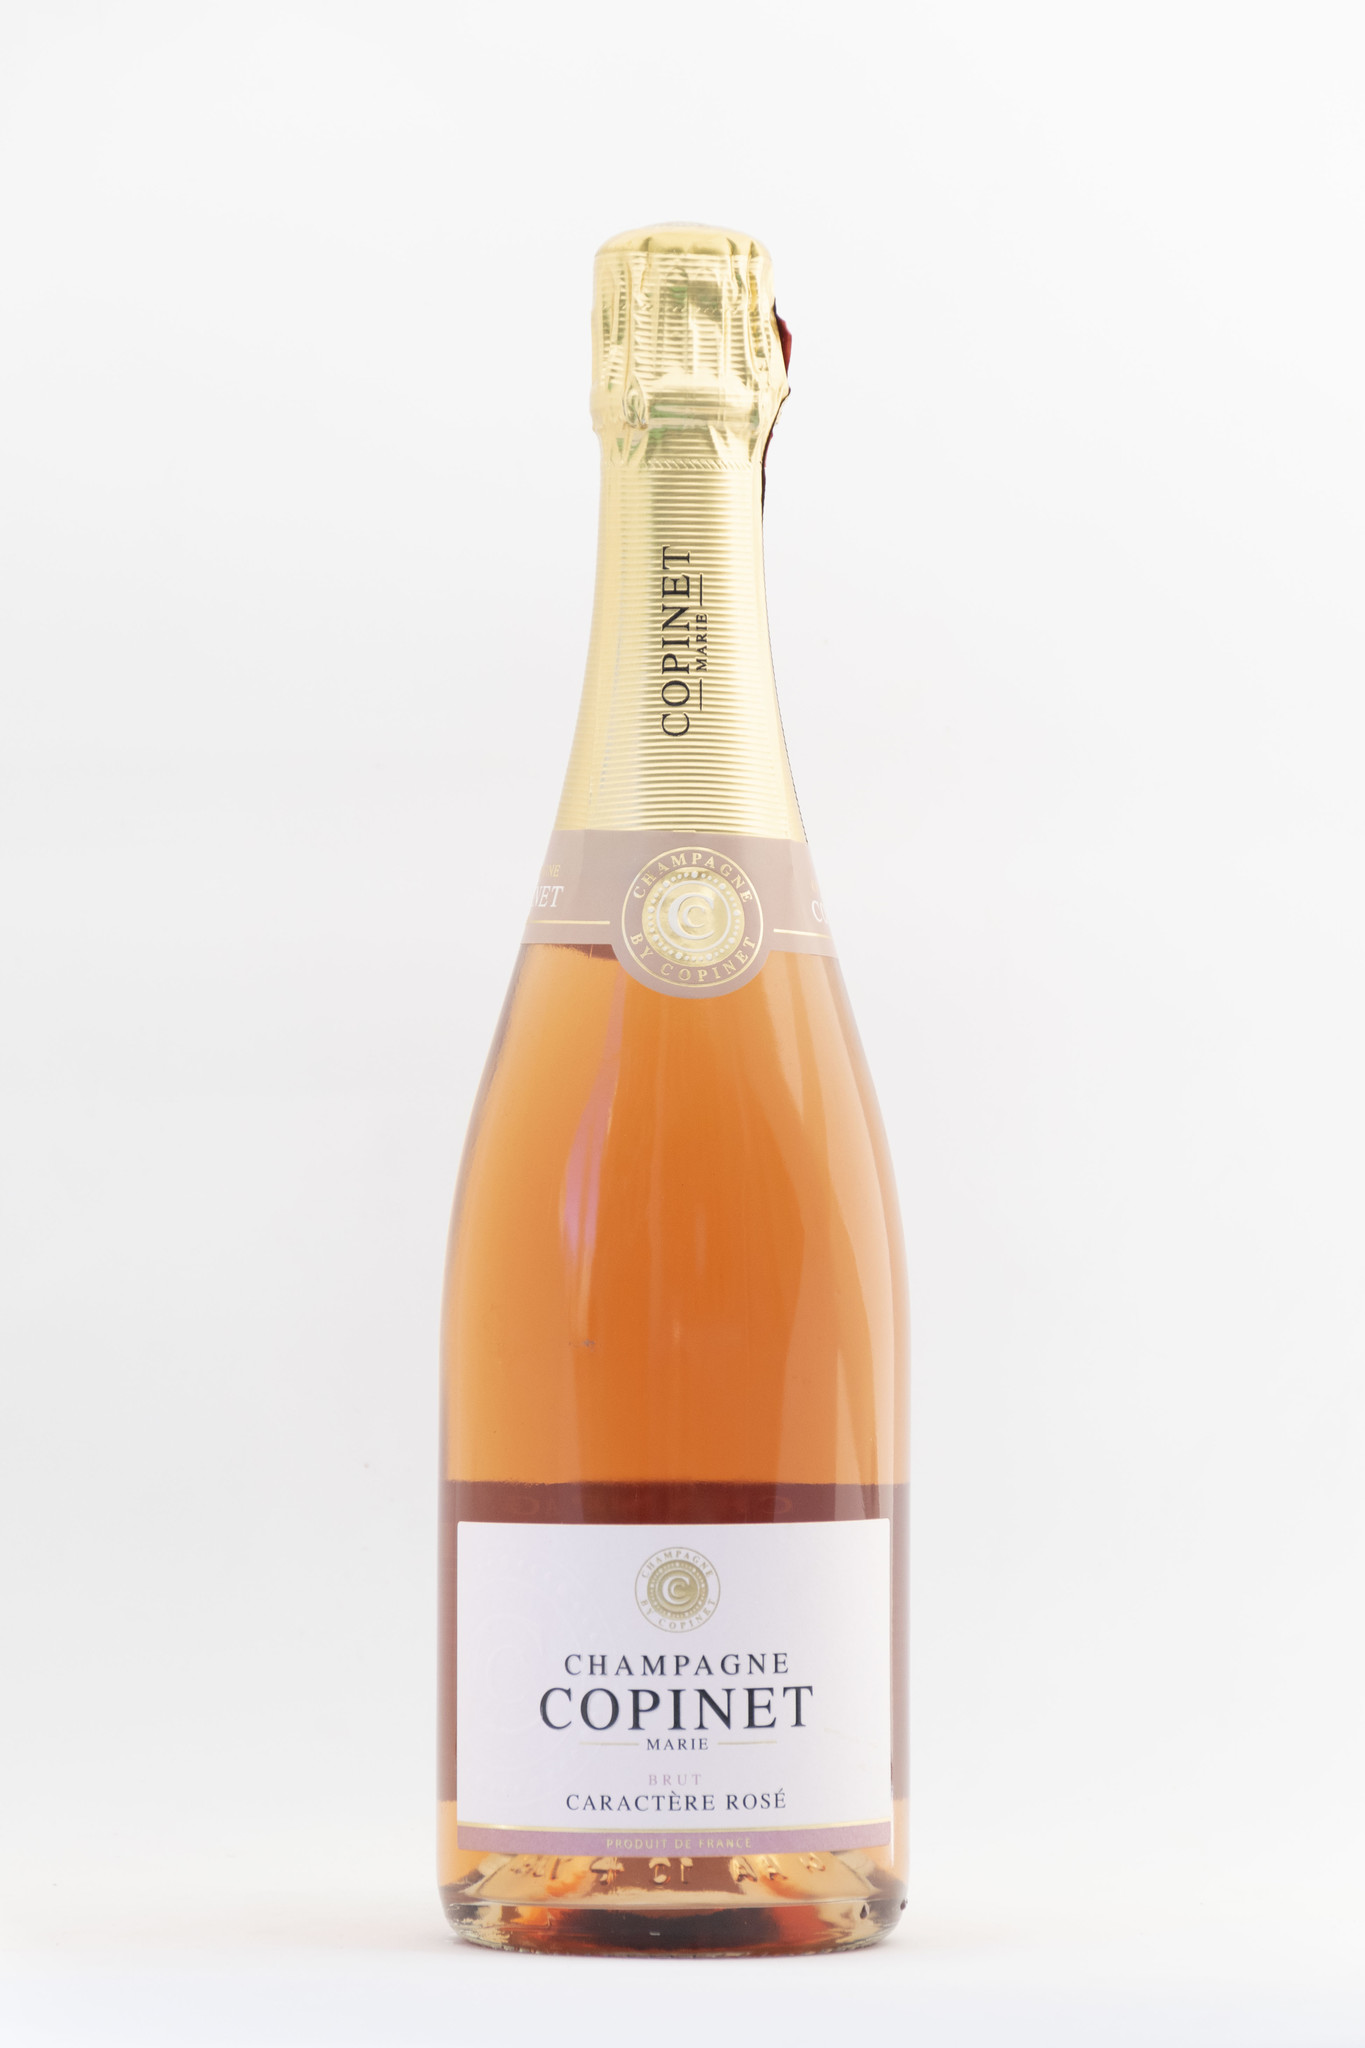 Caractere' Brut Rose | Champagne |Marie Copinet| Bouteille